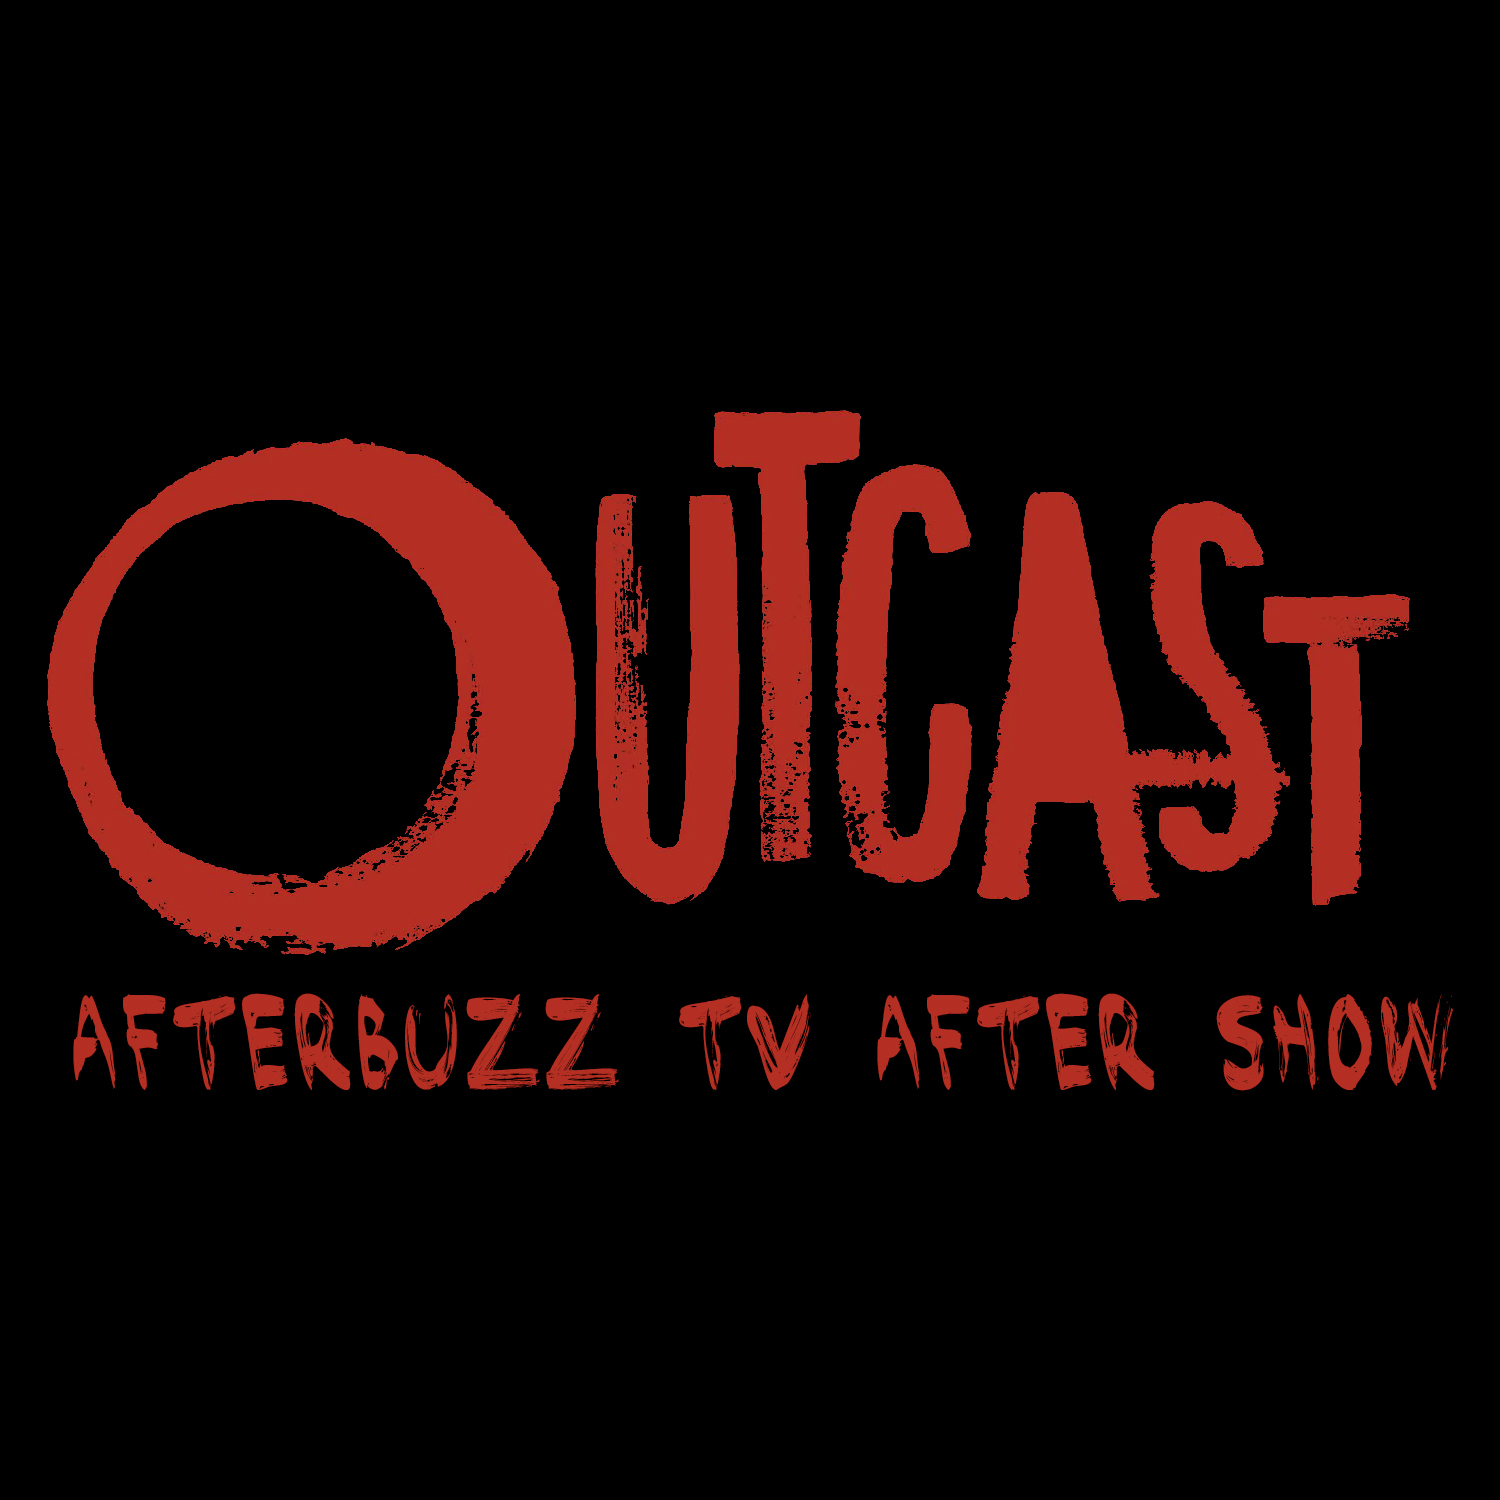 Outcast After Show